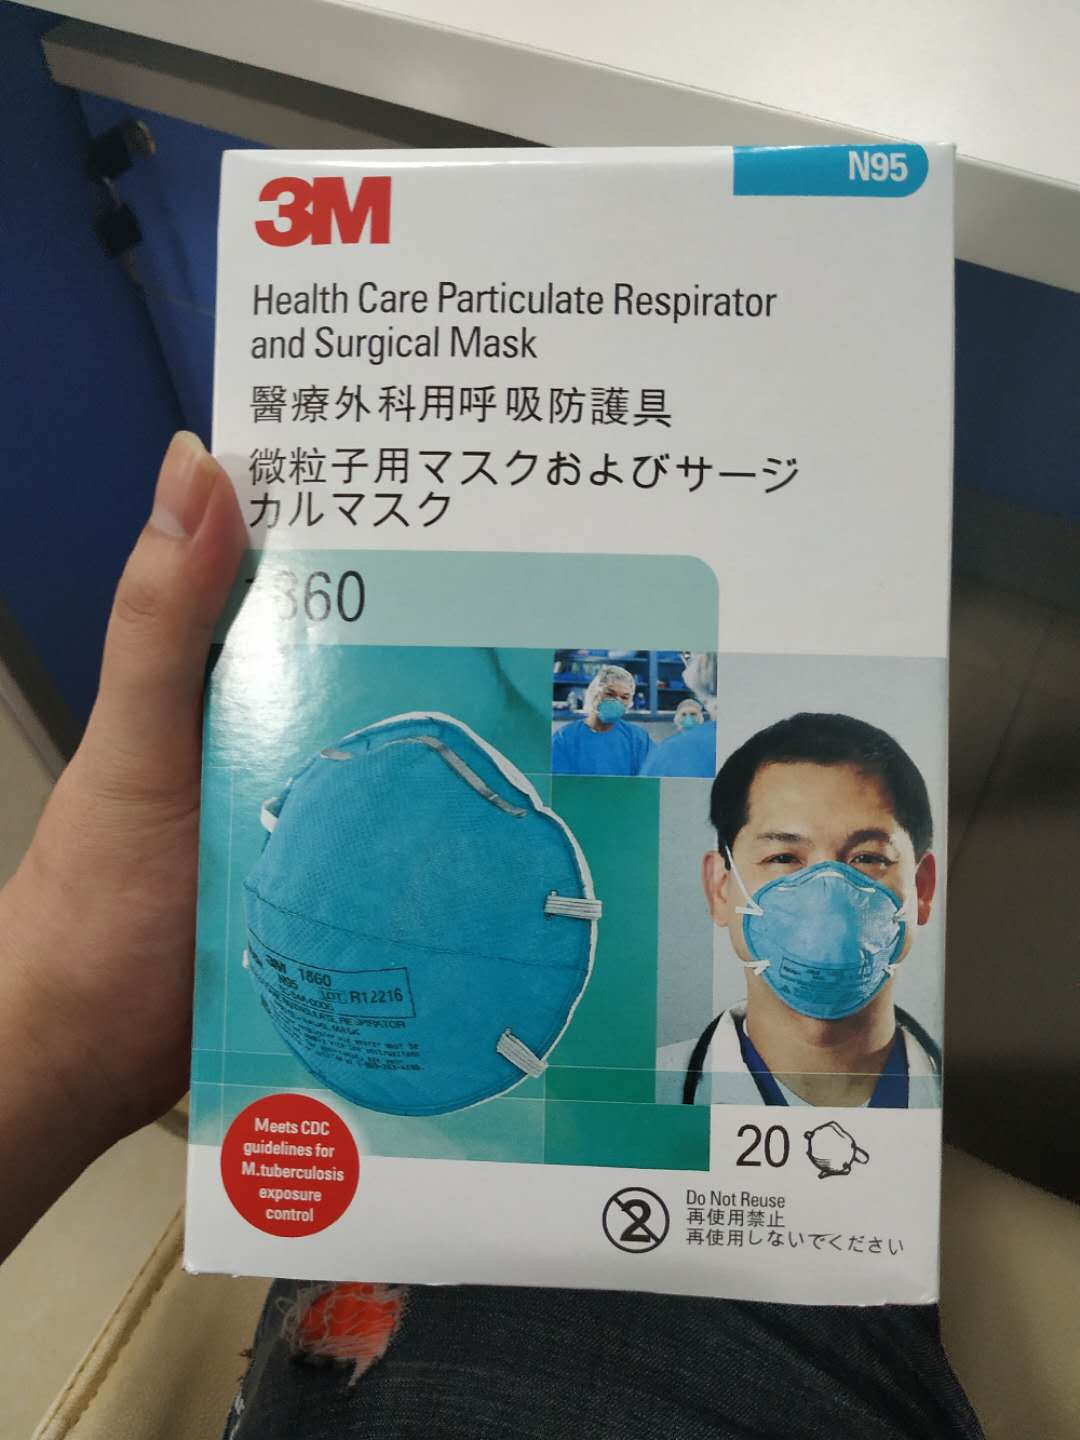 【Wholesale 3M 1860】Health Care Particulate Respirator and Surgical Mask from 20,000Pcs 10